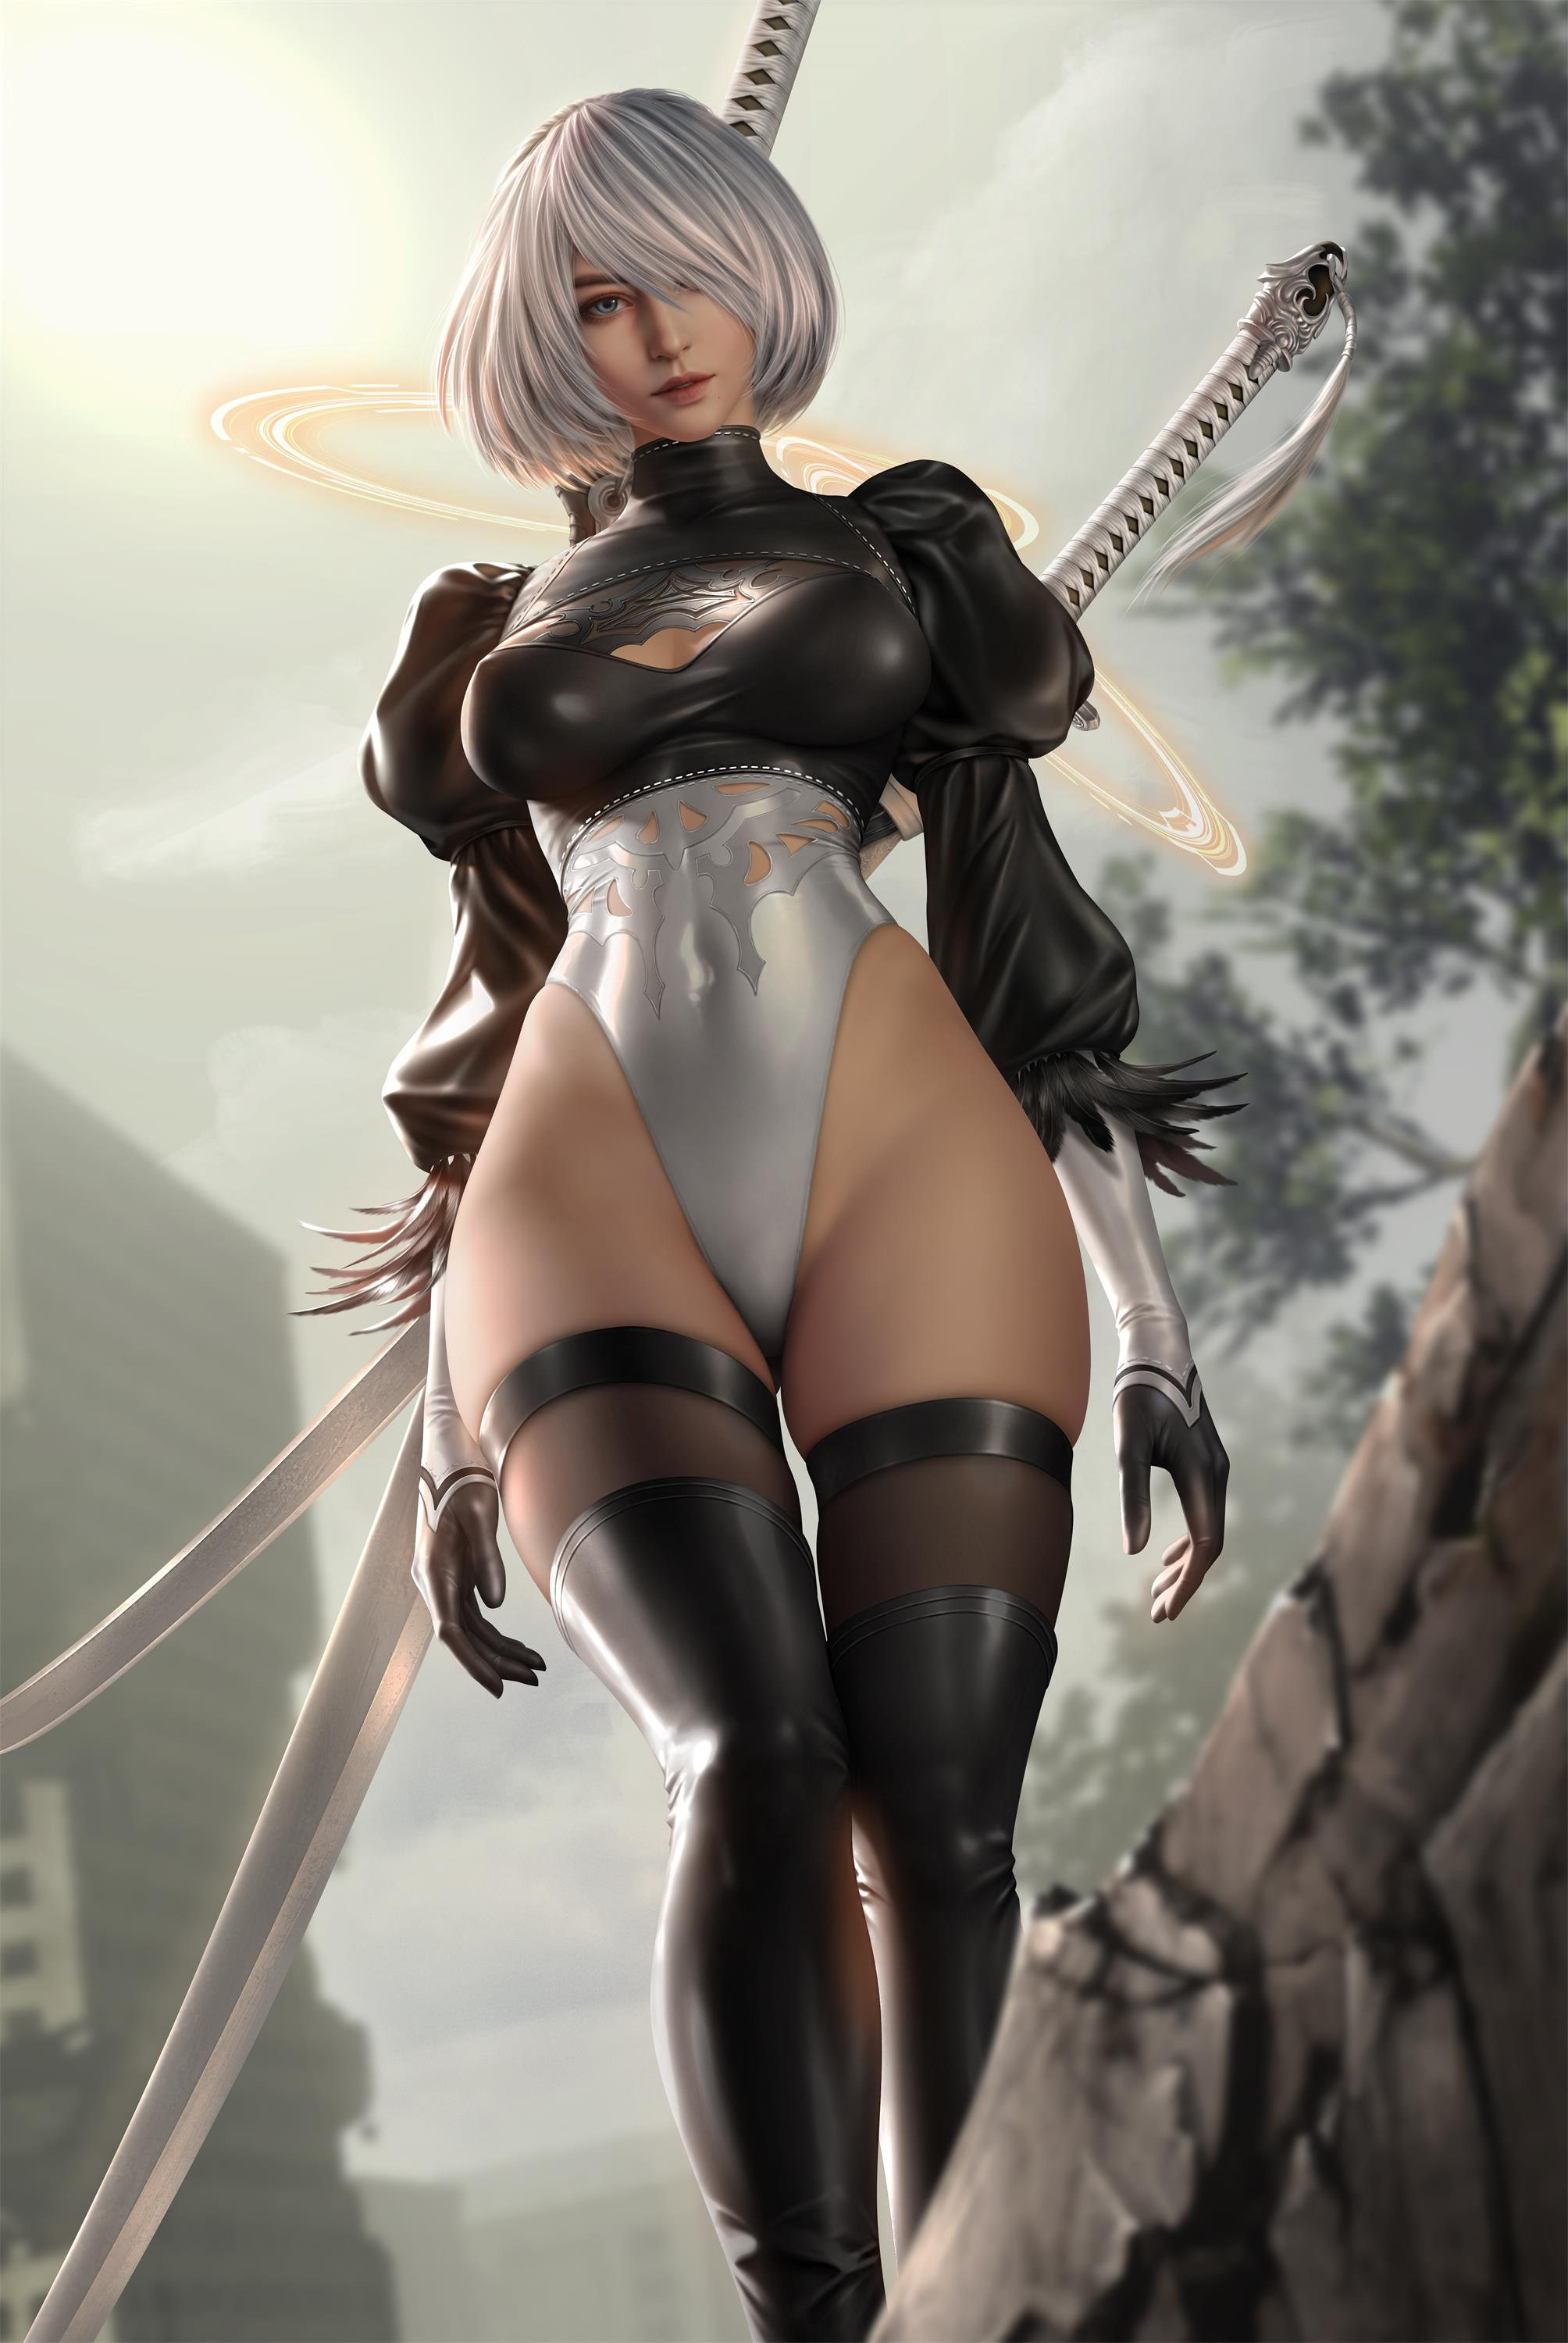 General 2008x3000 2B Yorha unit no.2 type b skimpy clothes cloudy_d Nier: Automata 2B (Nier: Automata) 3D graphics render wide hips thighs thigh-highs black stockings satin gloves gloves video games video game girls video game art women